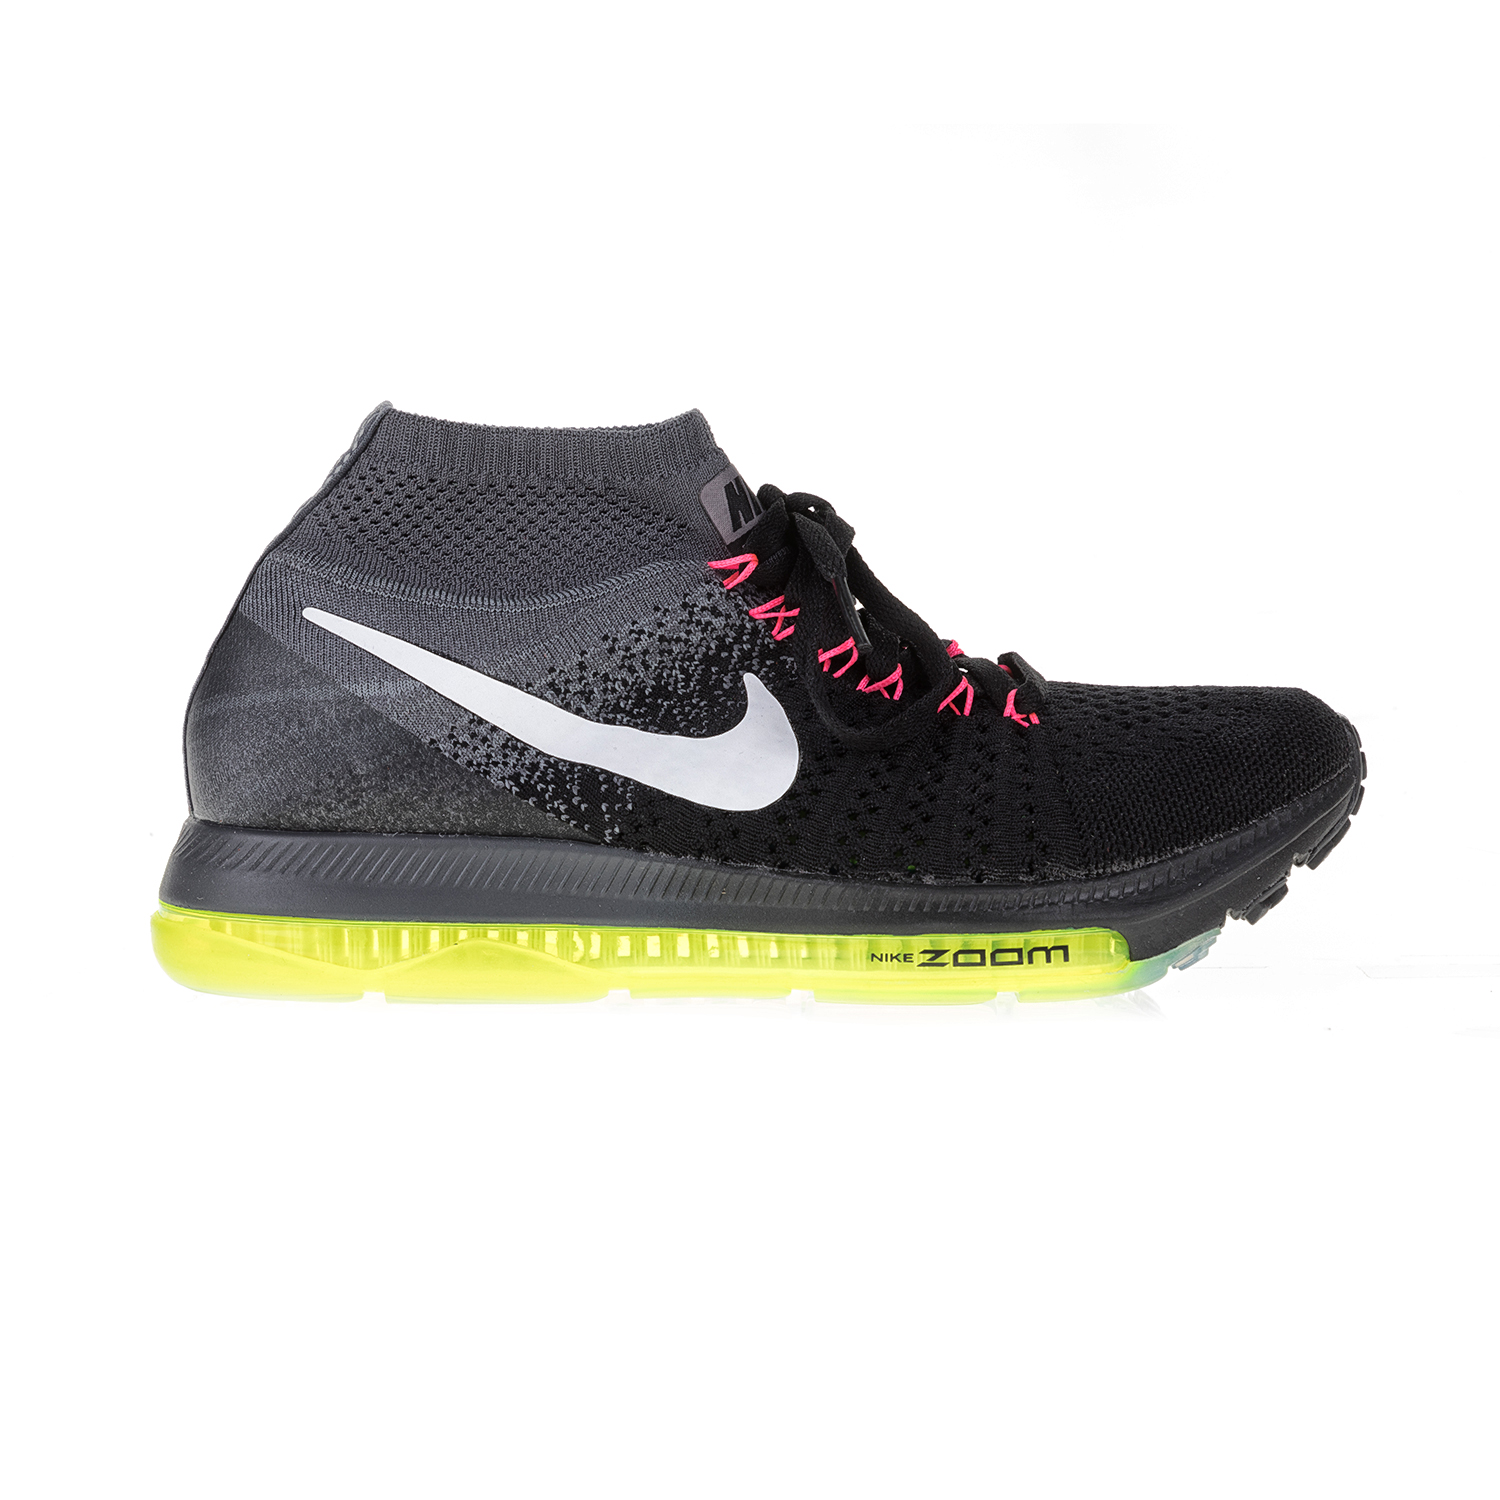 NIKE – Γυναικεία αθλητικά παπούτσια NIKE ZOOM ALL OUT FLYKNIT μαύρα-γκρι